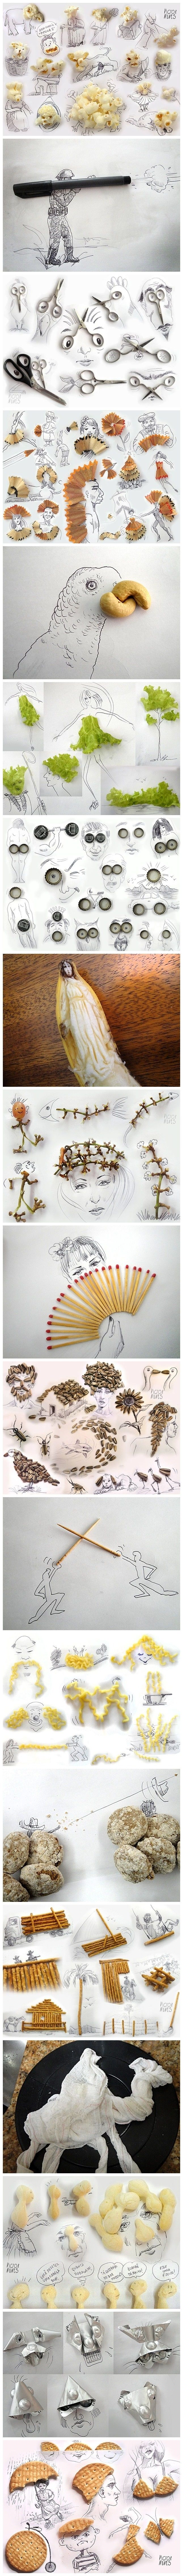 Victor Nunes will change the way you look at common-day things. Artist Victor Nunes turns everyday objects into sets of cute and quirky doodles.